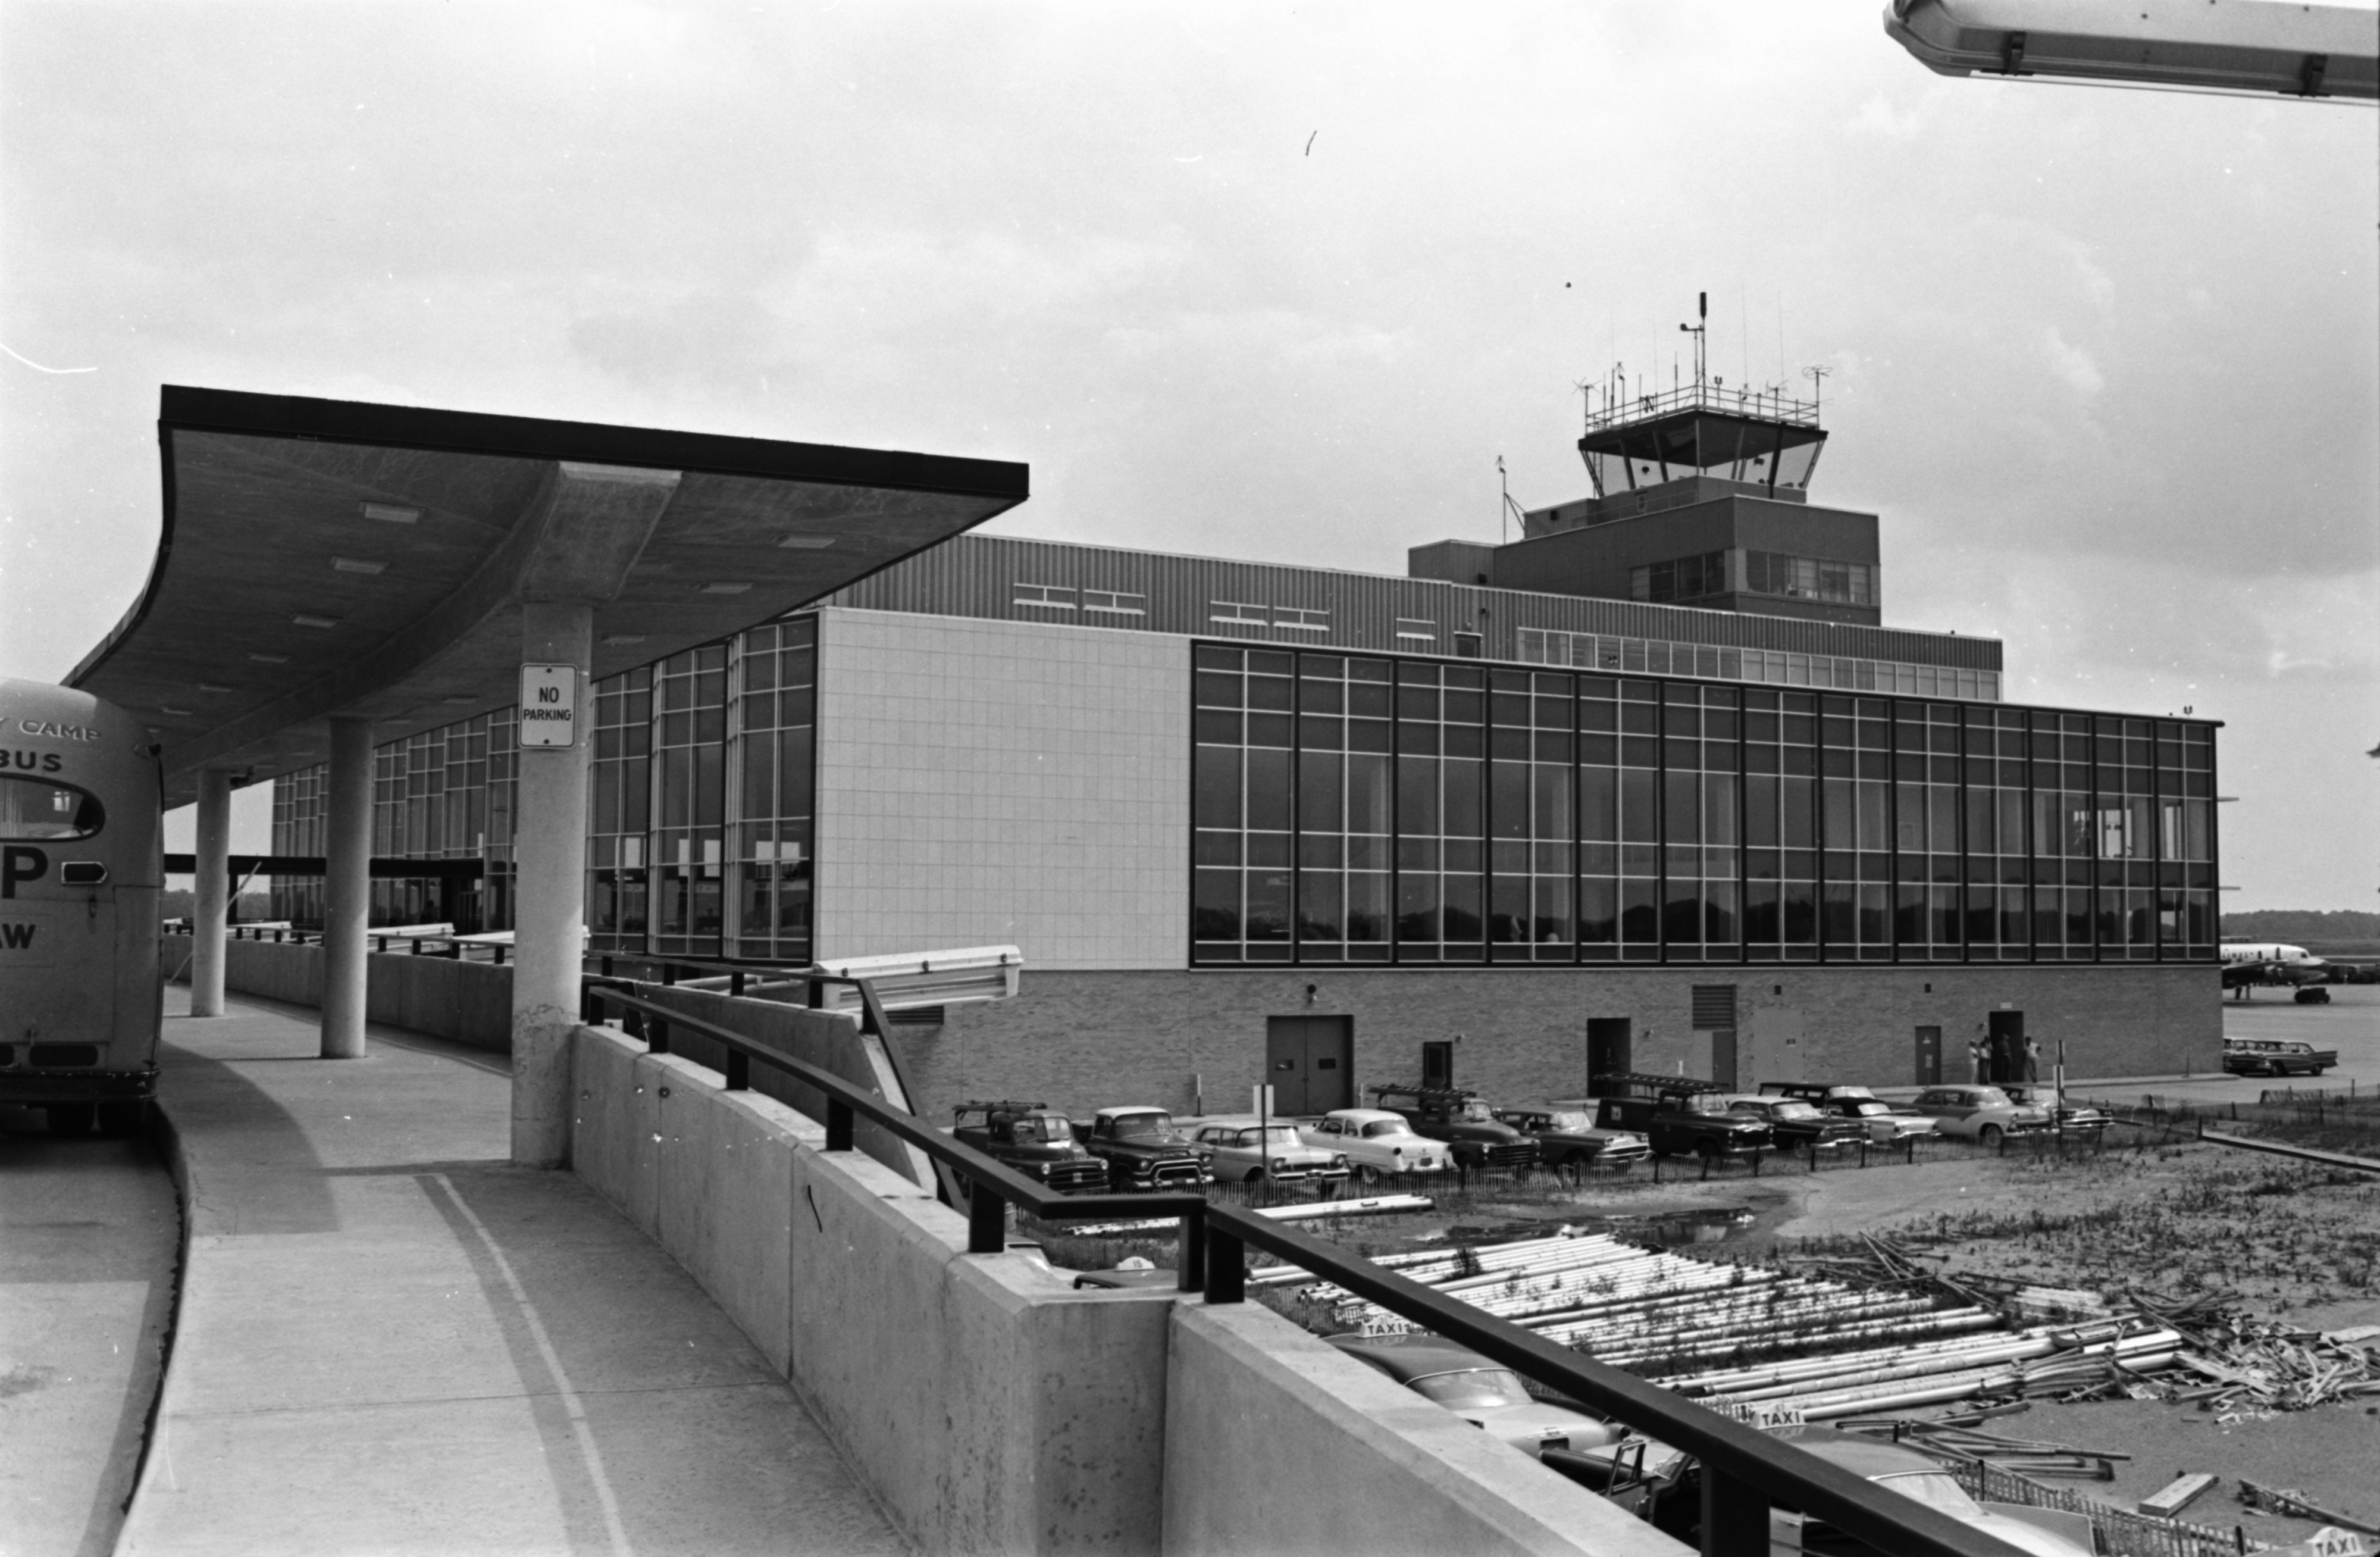 Exterior showing partial renovation and expansion of Detroit Metropolitan Airport, August 1959 image